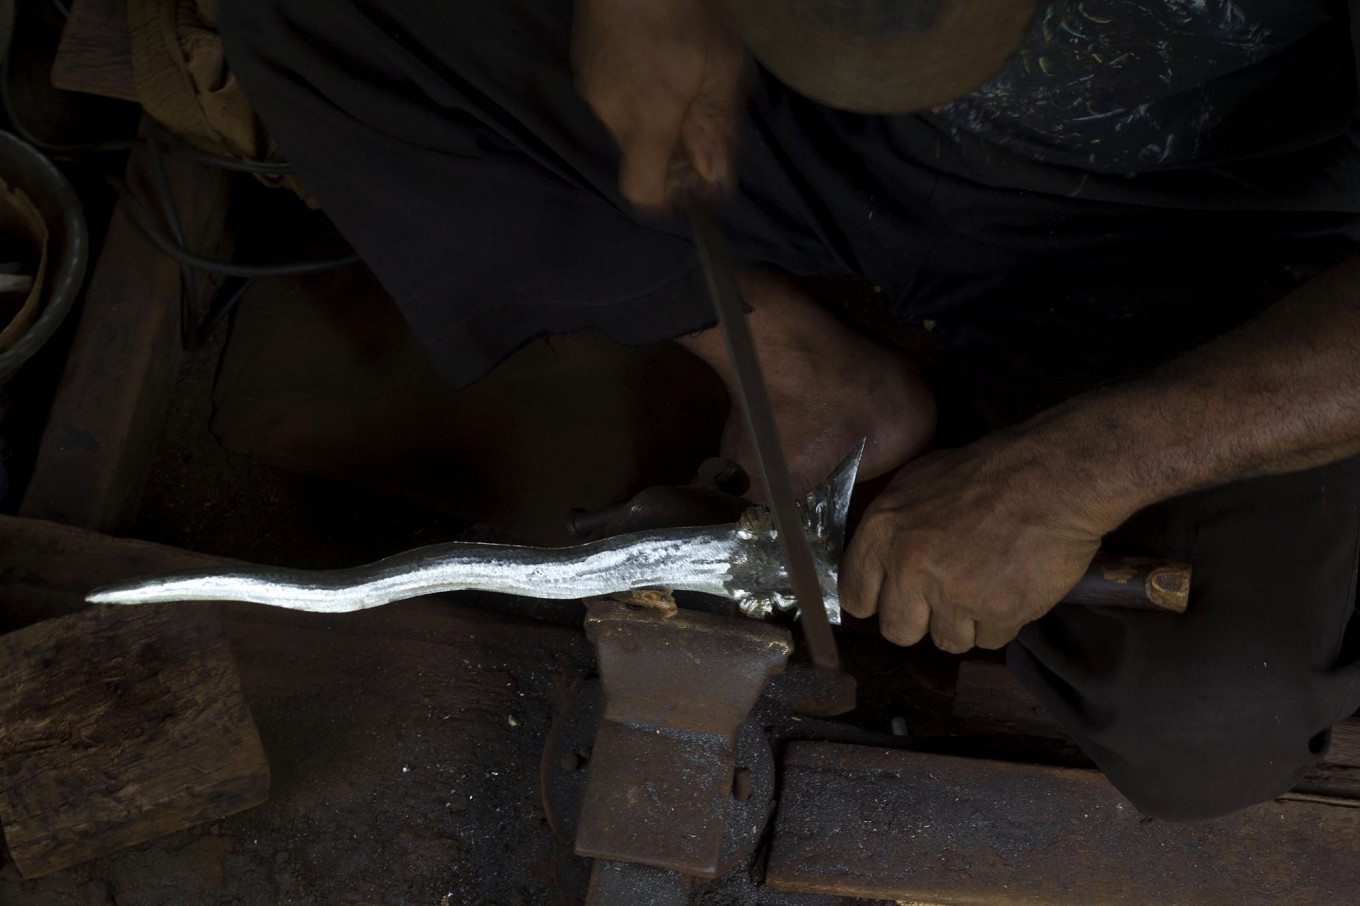 Shining silver: An iron file is used to refine intricate parts of a kris. JP/Sigit Pamungkas